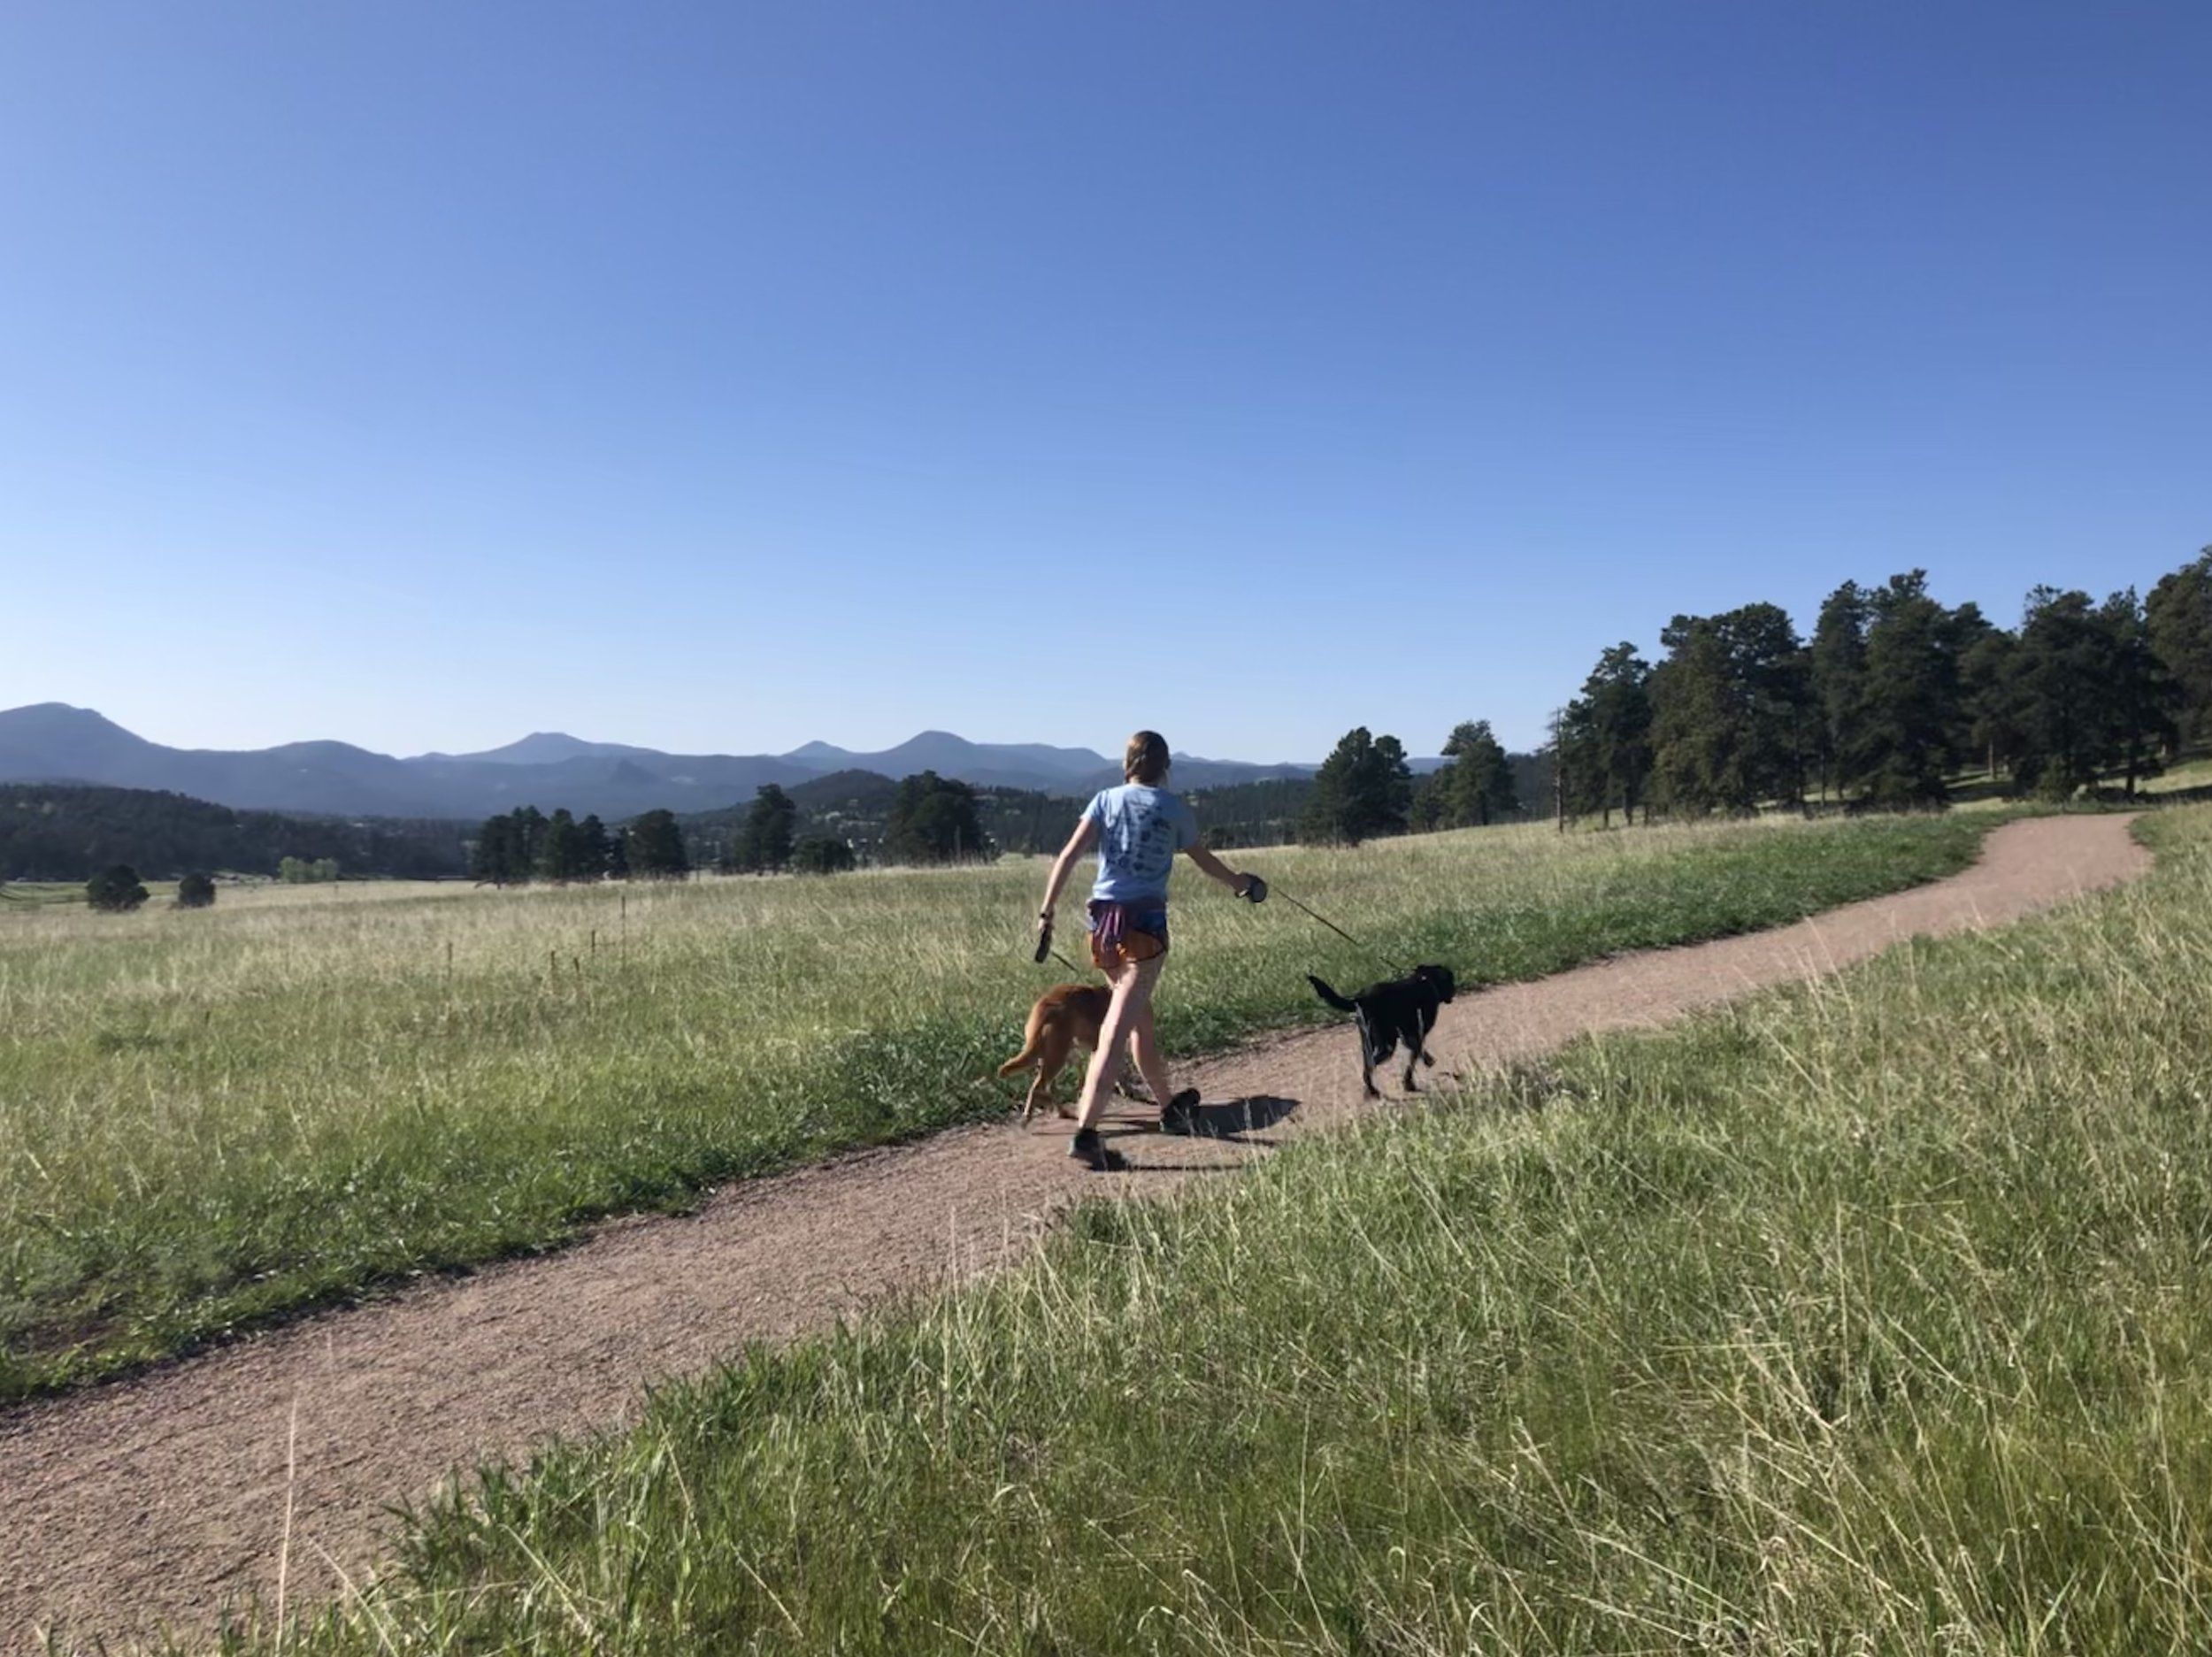 Far-reaching views at Elk Meadow on the Meadow View trail. ©Suzanne Brown 2019